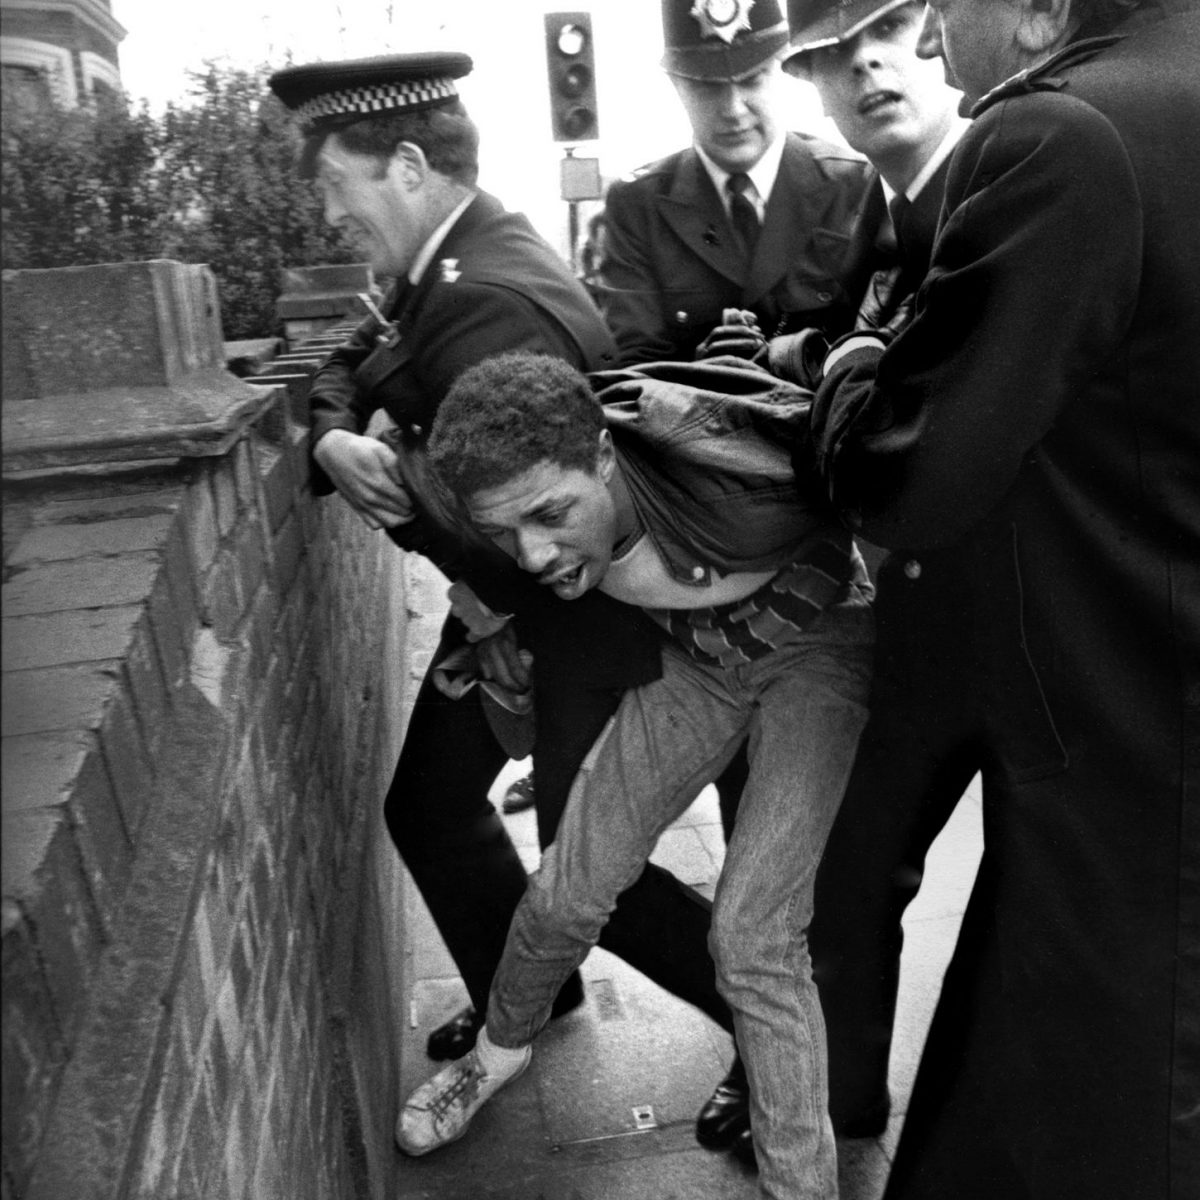 Police make an arrest following a protest against racism in Newham. London, 1985.